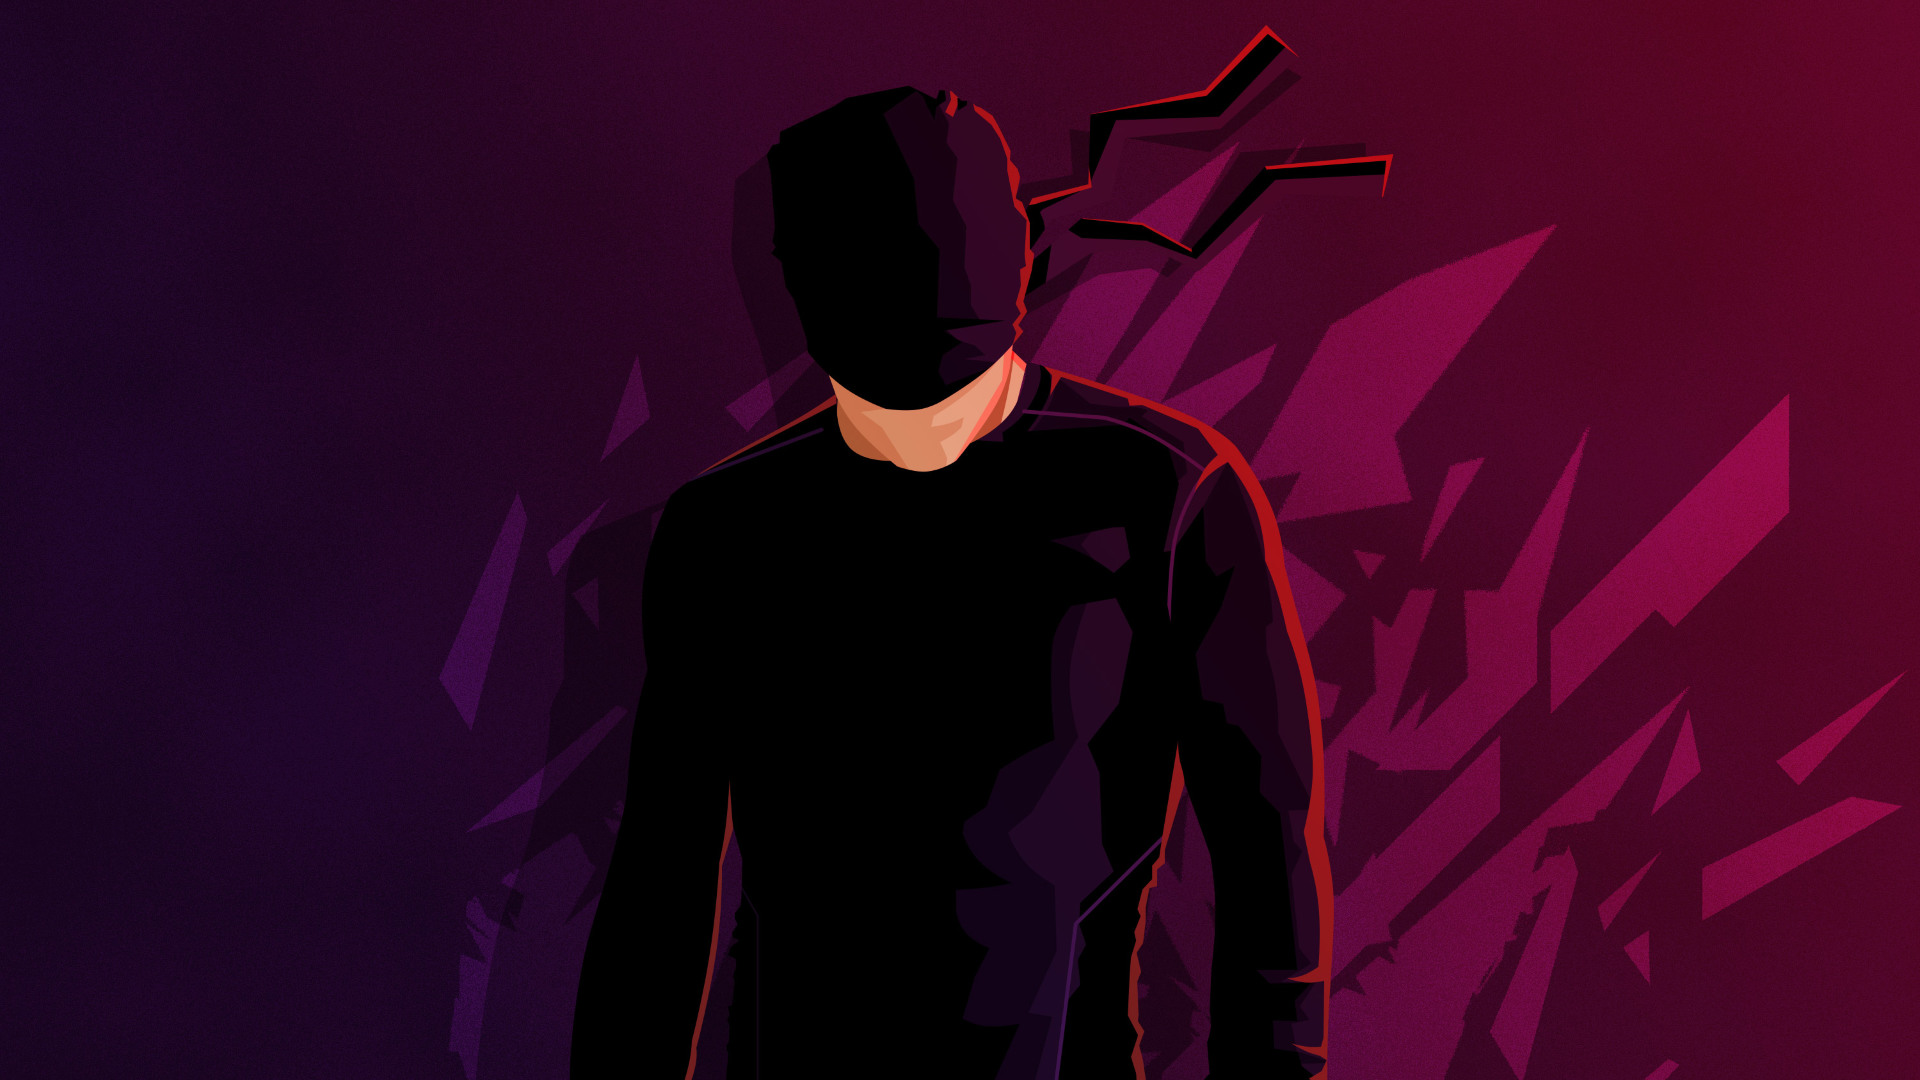 1920x1080 Daredevil Minimalism 1080p Laptop Full Hd Wallpaper Hd Minimalist 4k Wallpapers Images Photos And Background